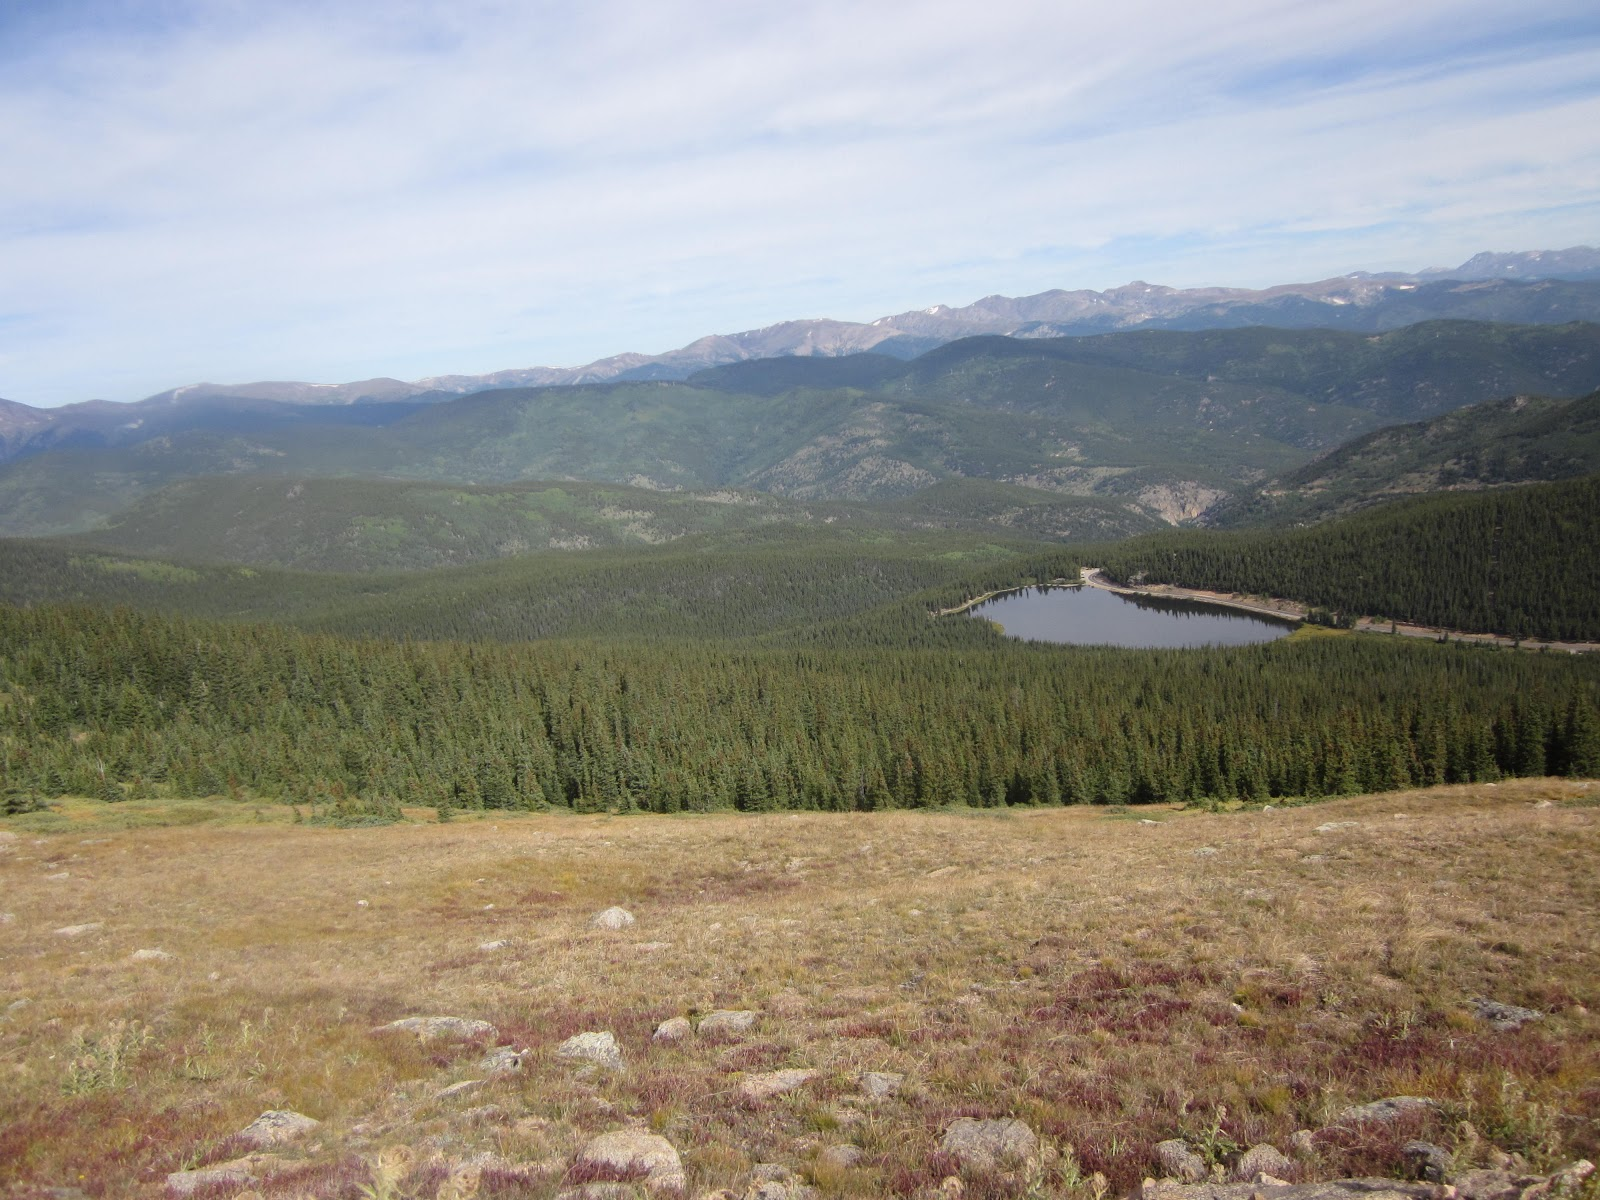 Cycling above treeline to Mt Evans in Rocky Mountains Colorado